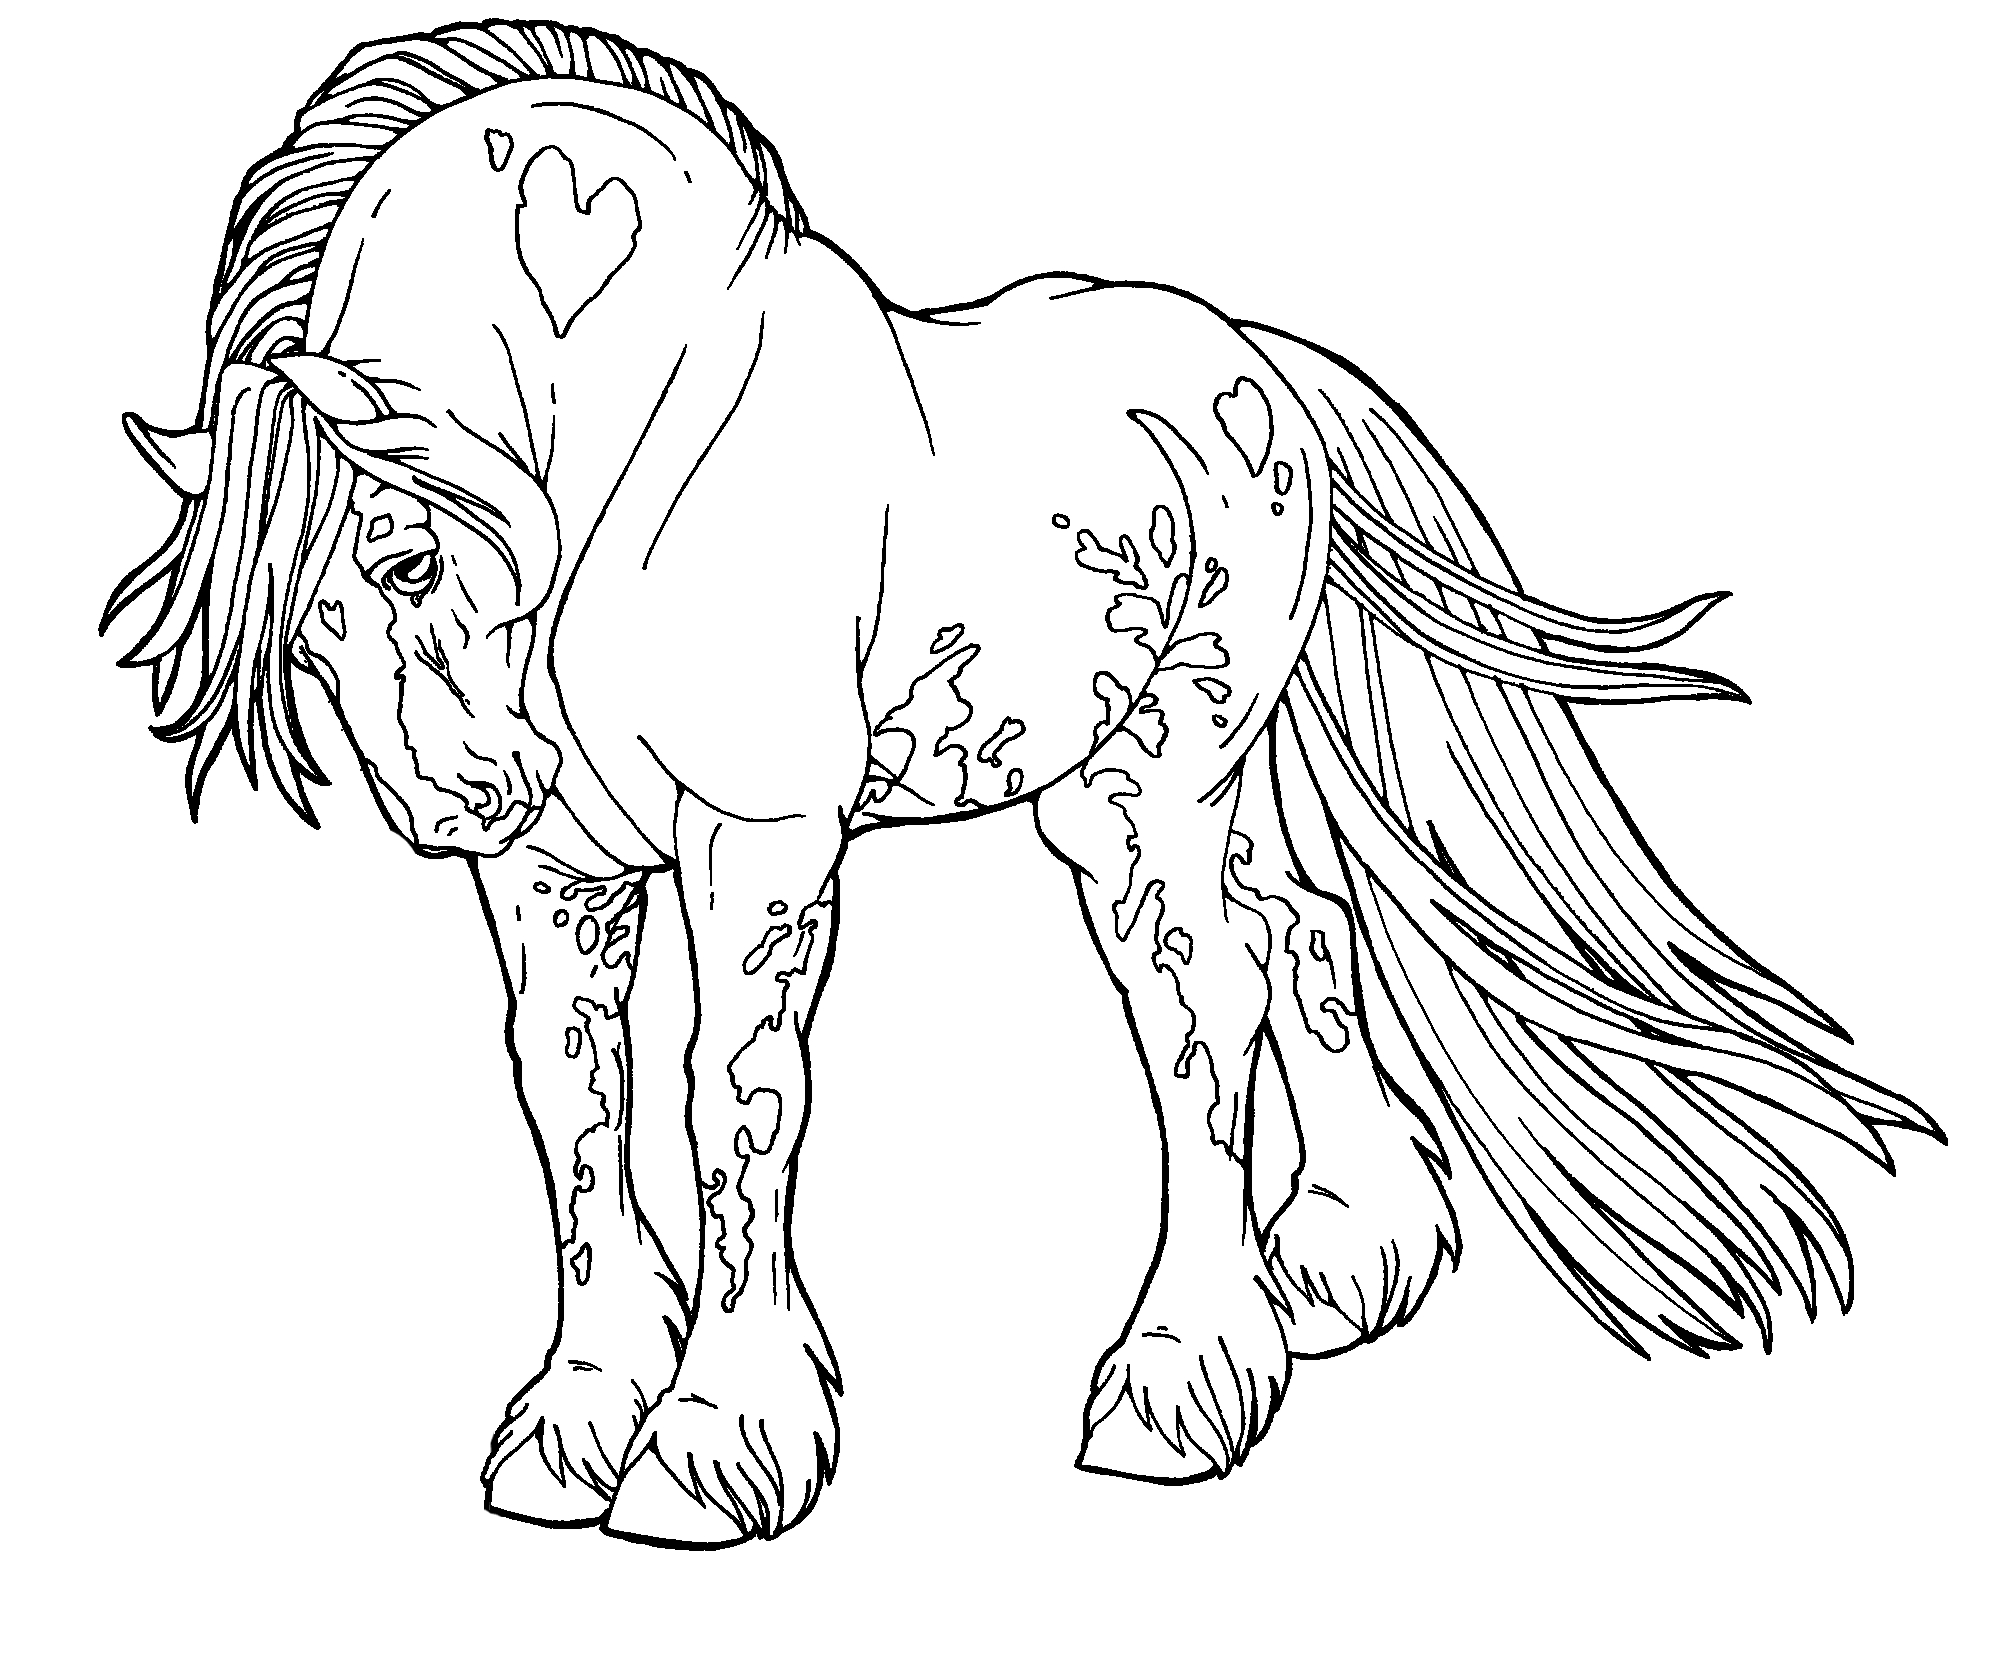 Free Line Art : Free lines gypsy drum horse by applehunter on deviantart